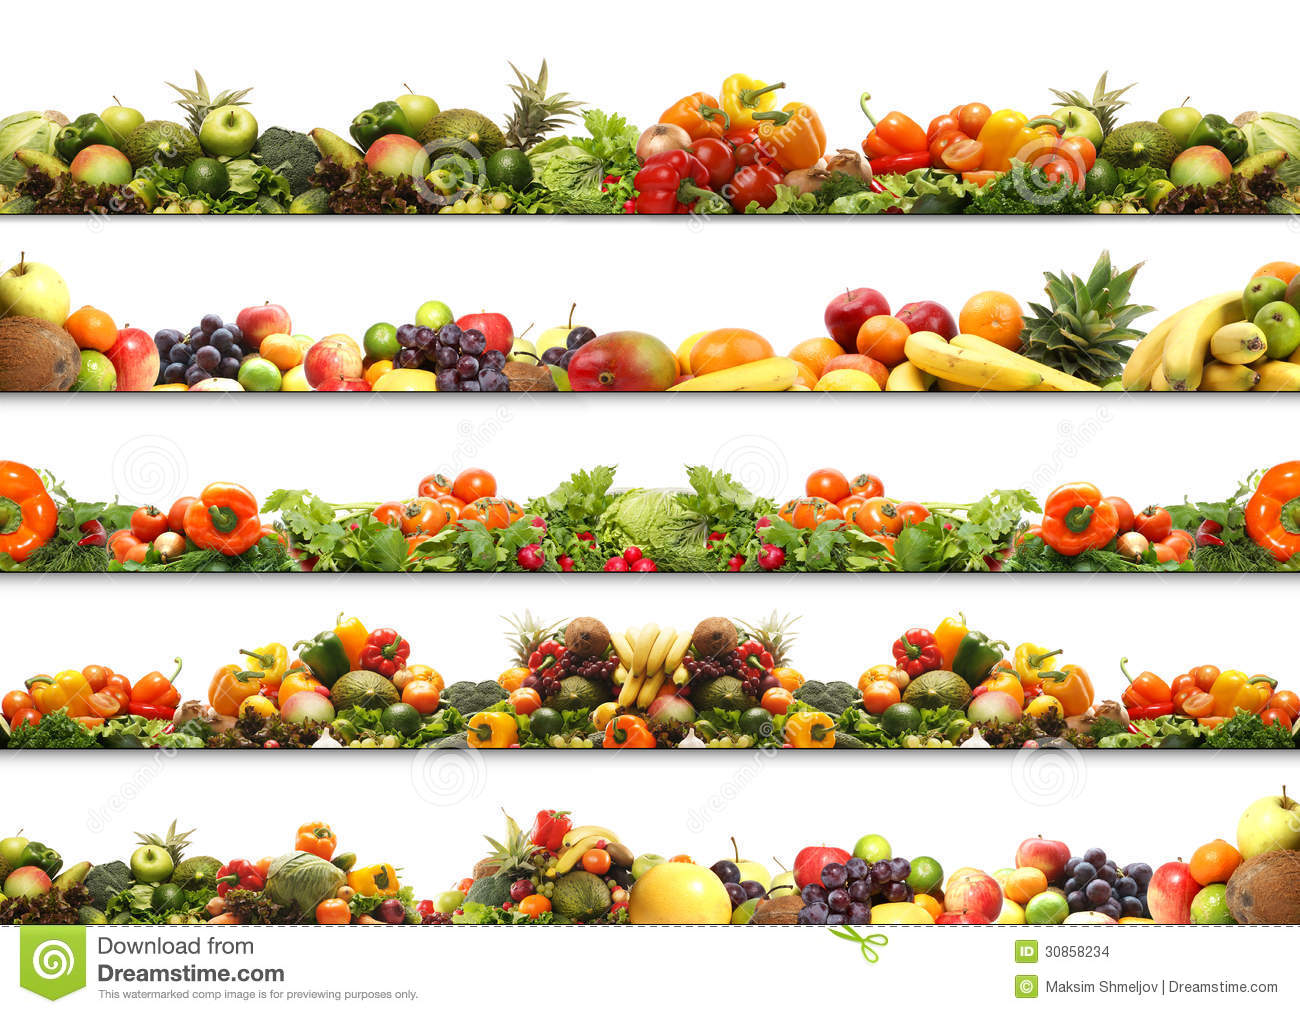 A collage of fresh and tasty fruits and vegetables